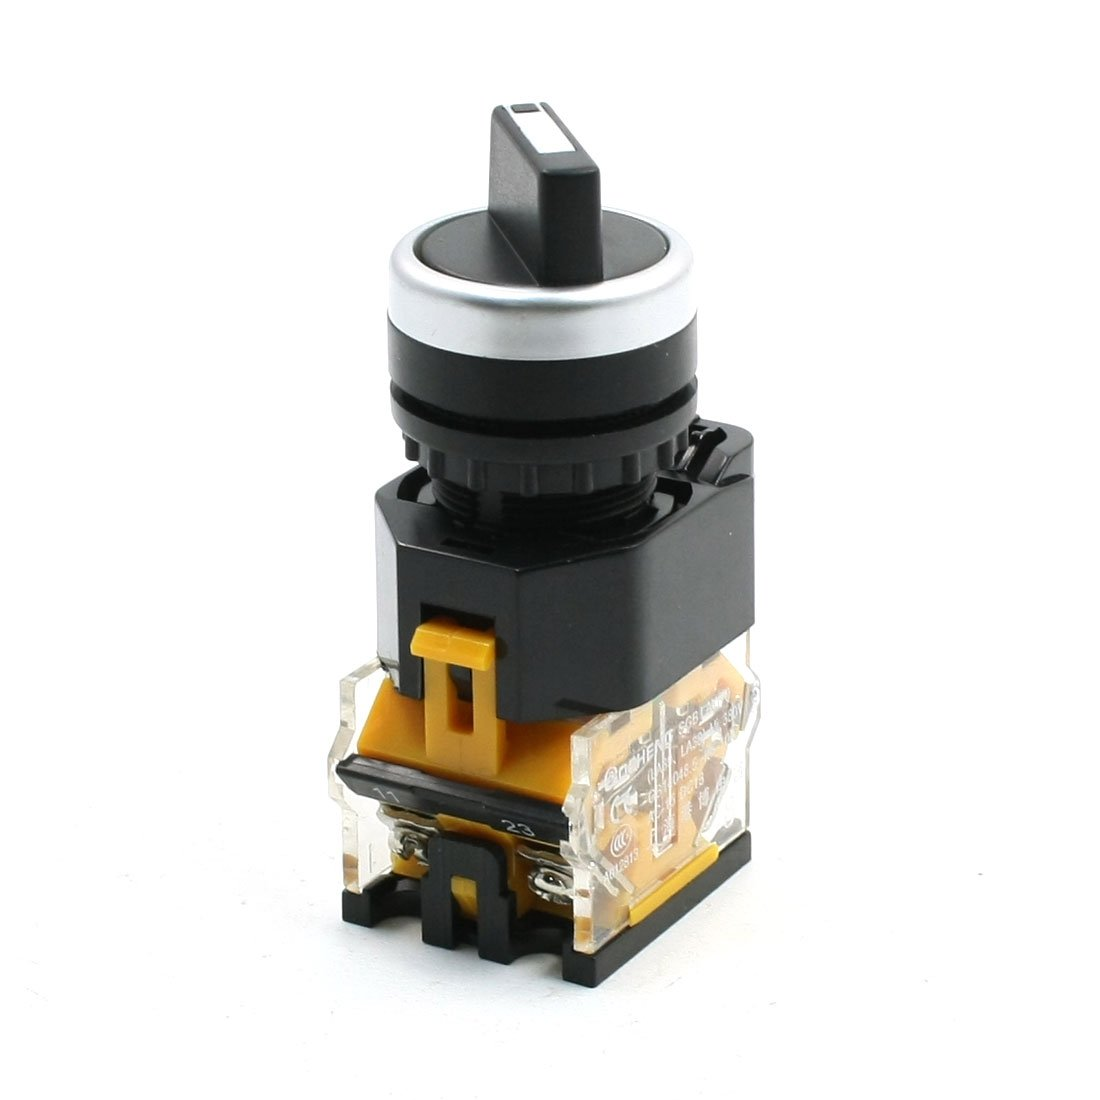 a13090300ux1174 UXCE9 Uxcell Push Button Switch Uxcell